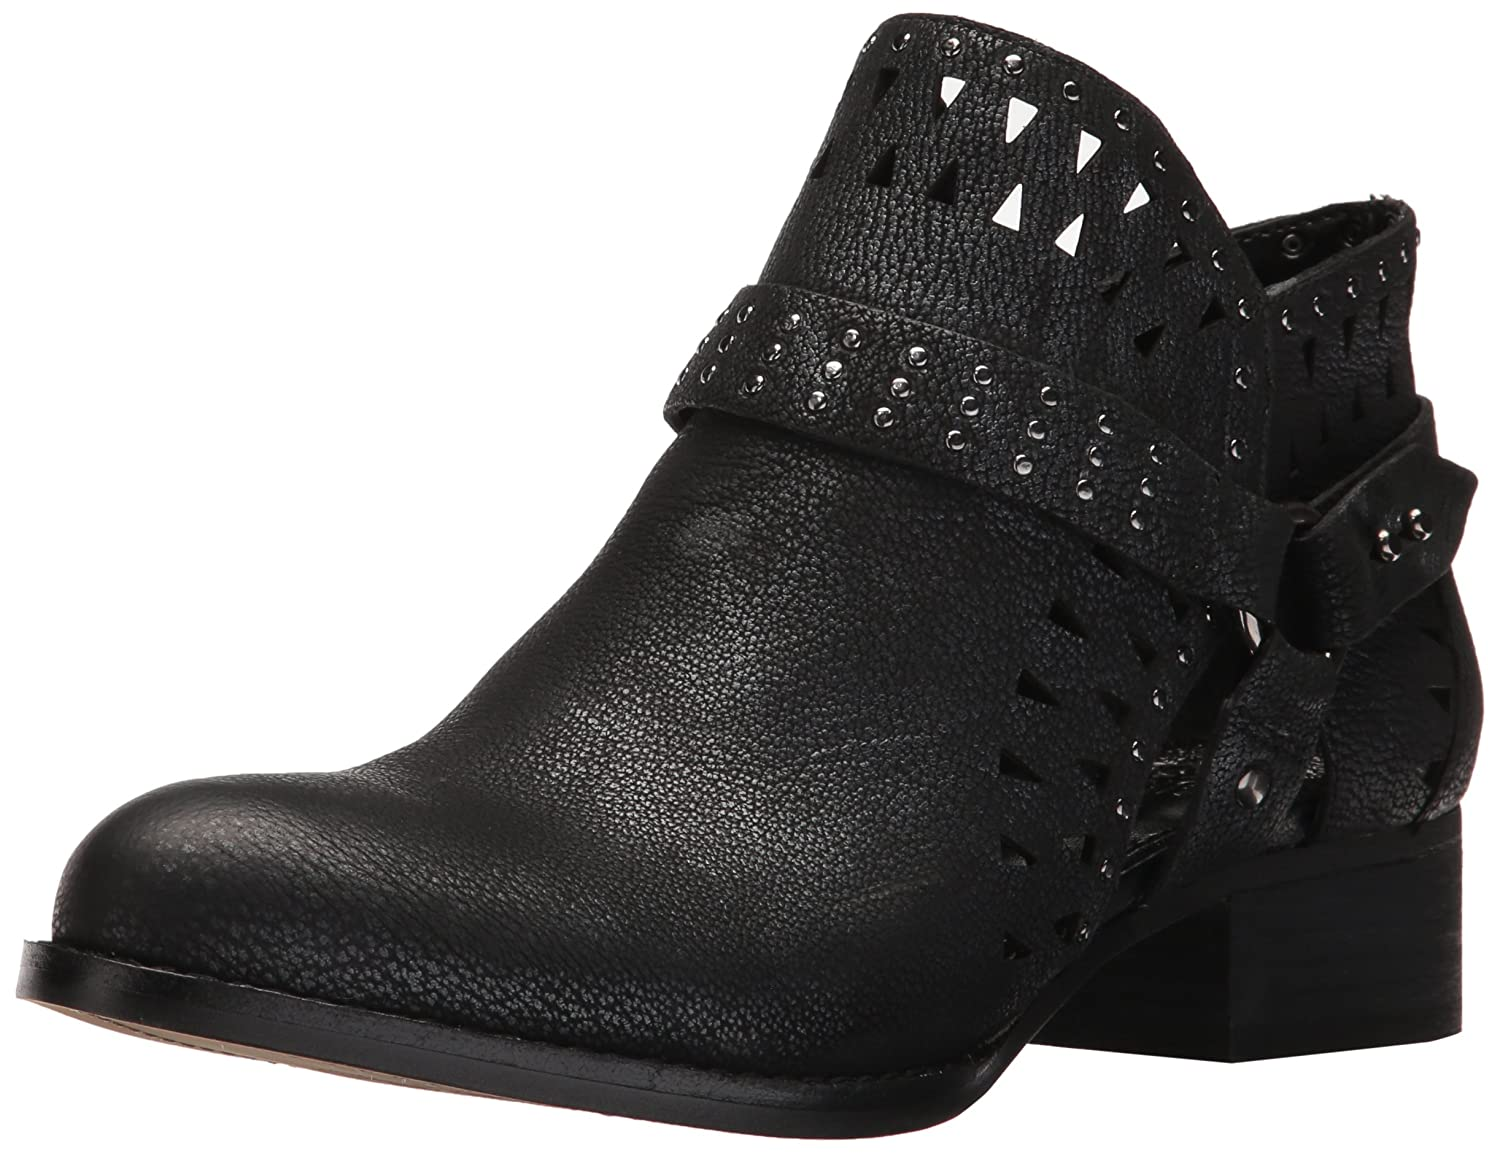 Vince Camuto Women's Calley Ankle Boot B01N6QE6DJ 6 B(M) US|Black